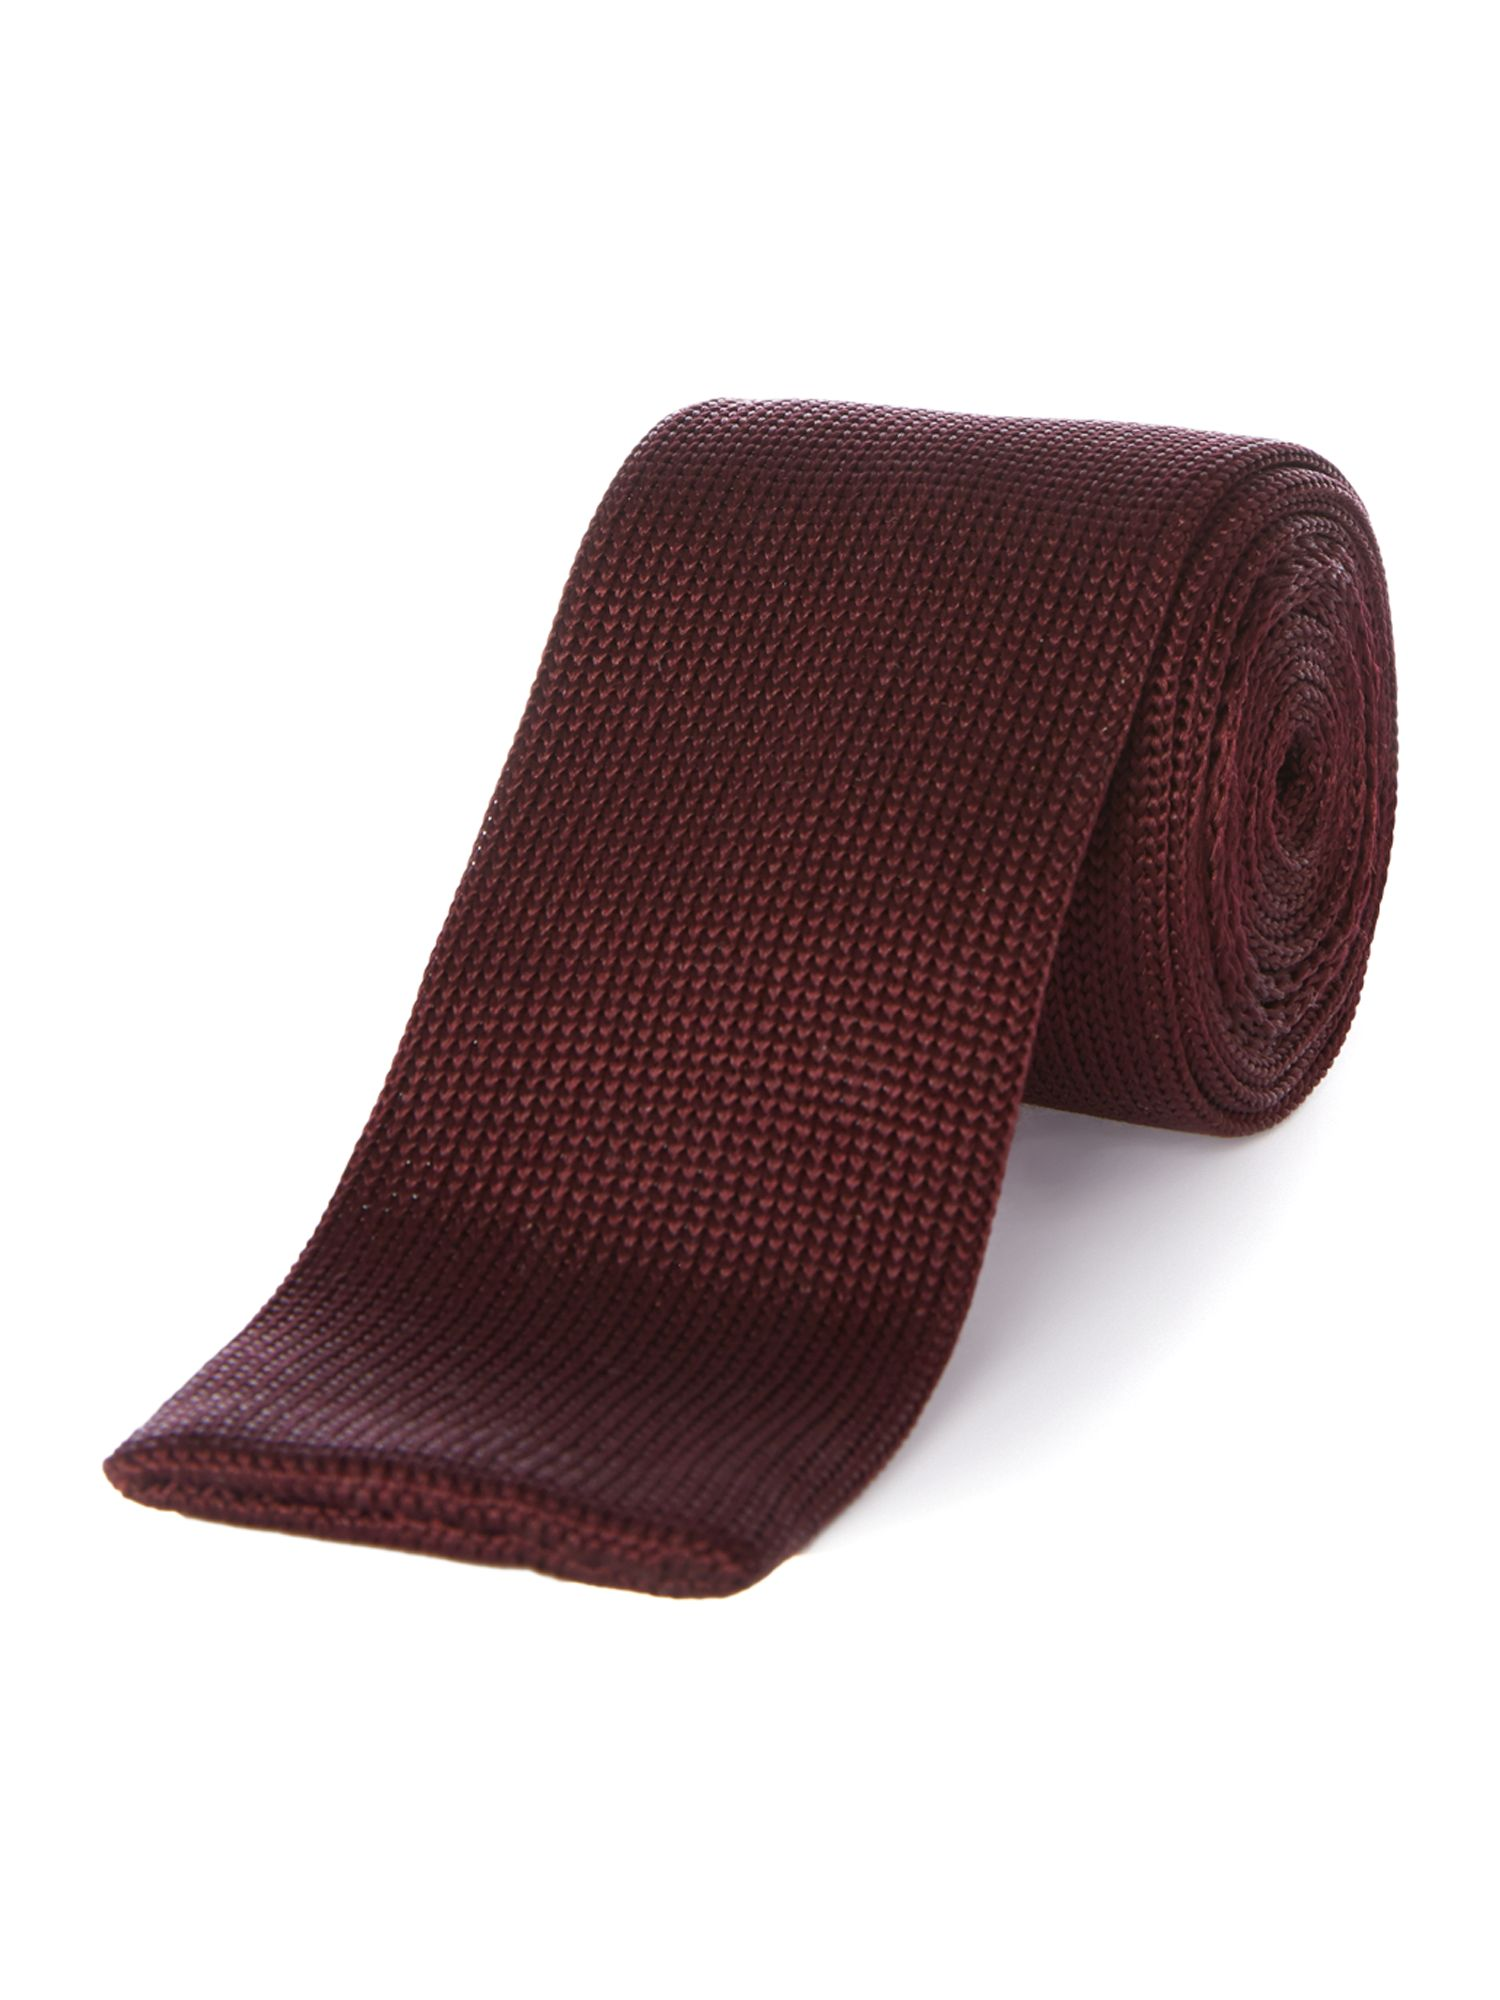 Vogan knitted silk tie